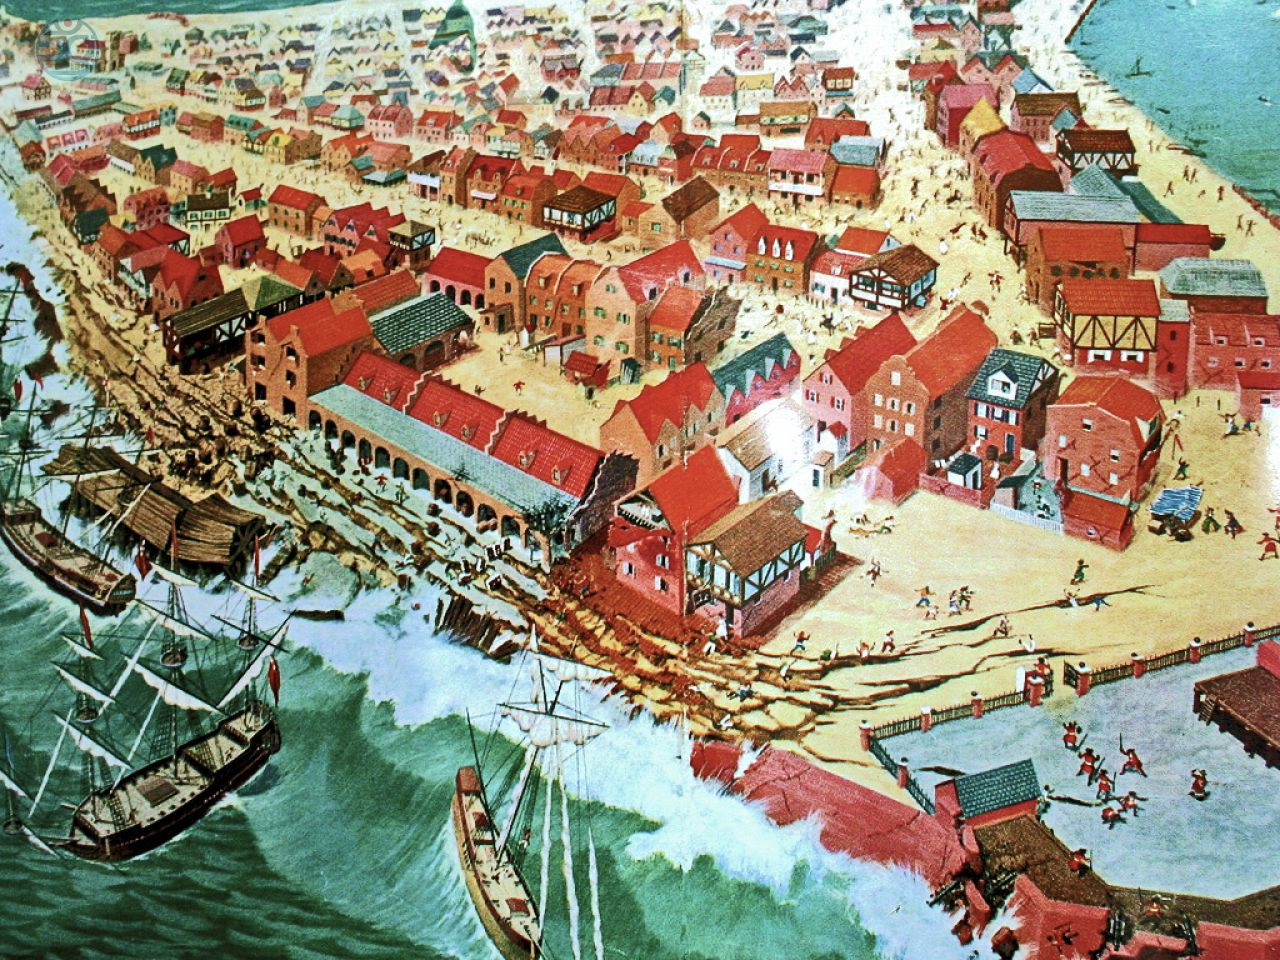 Port Royal in the 17th century